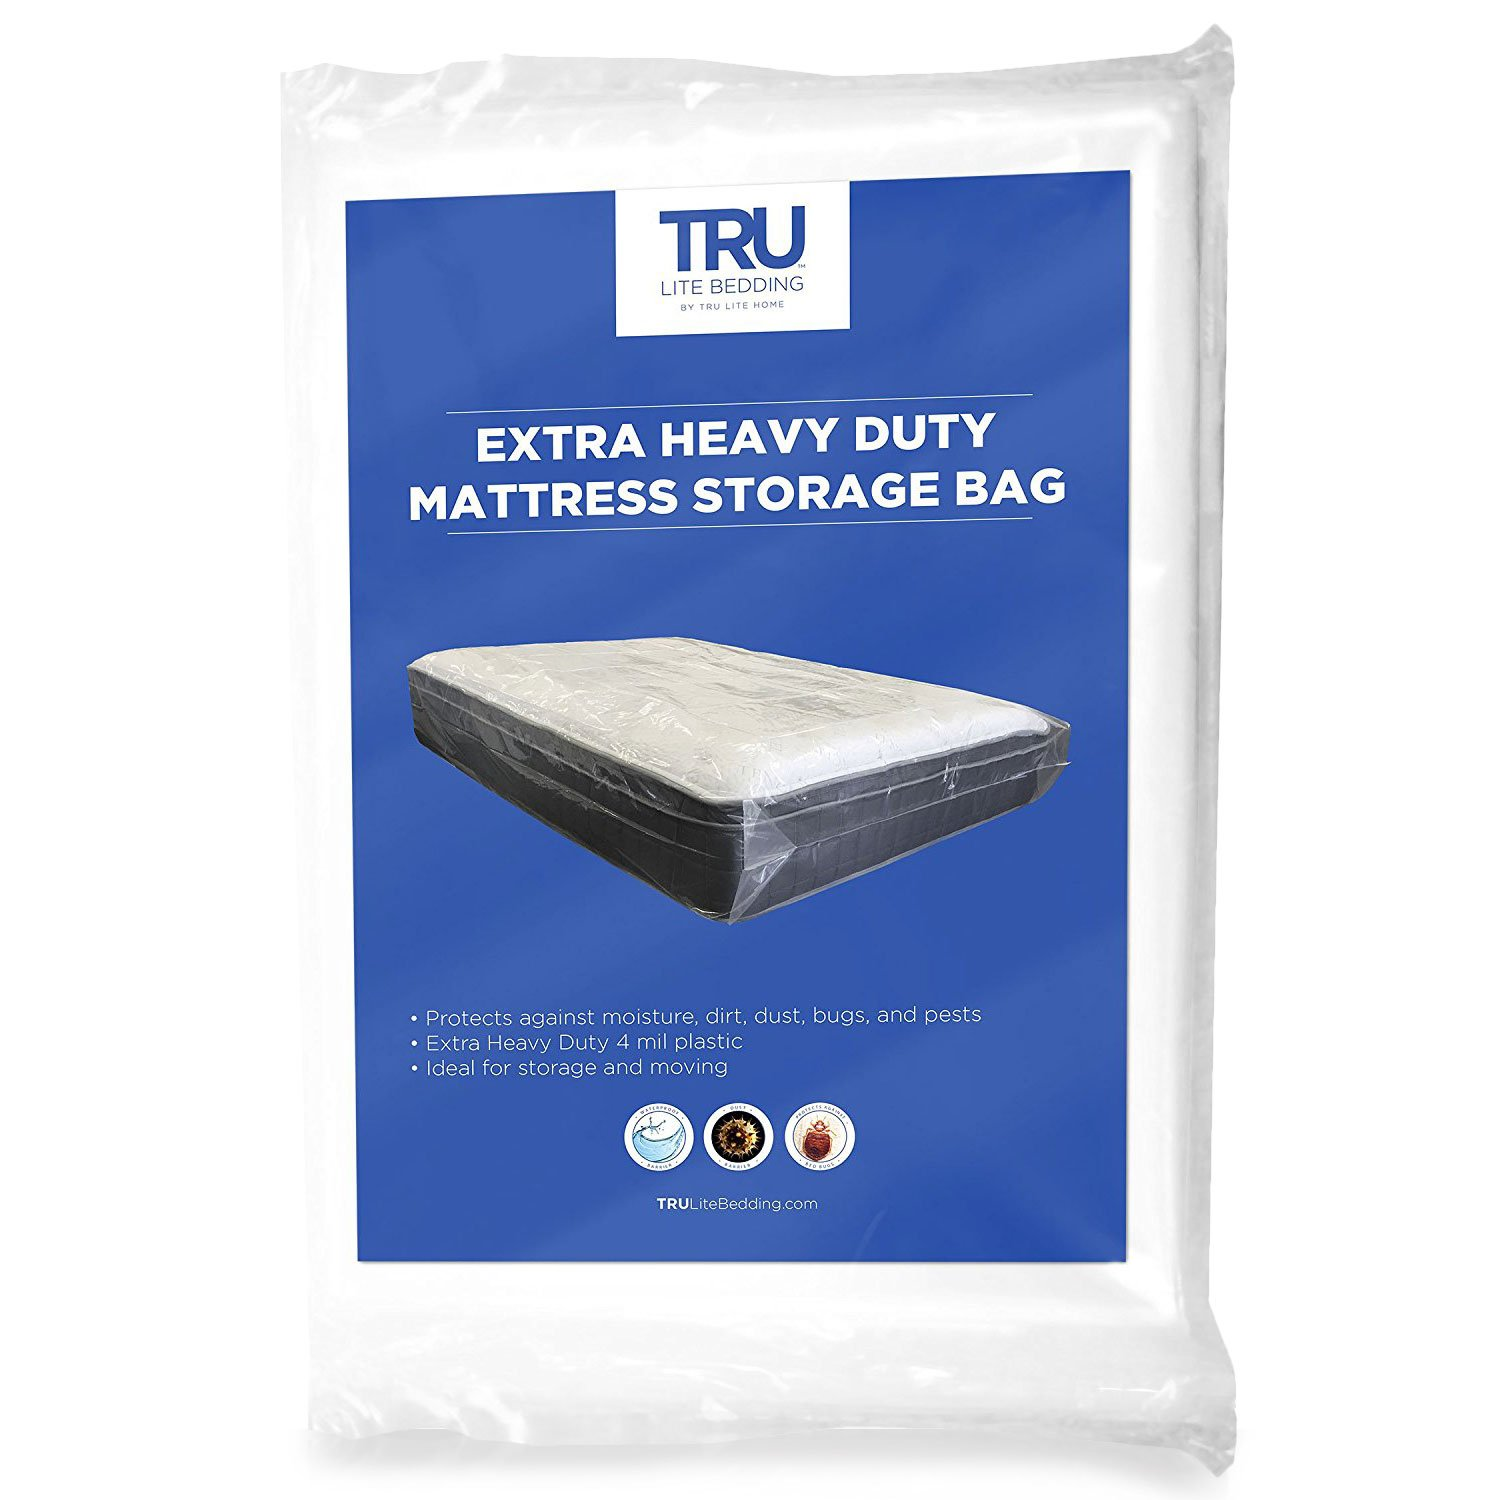 TRU Lite Mattress Storage Bag - Mattress Bag for Moving - Heavy Duty Extra Thick 4 Mil Plastic - Fits Standard, Extra Long, Pillow Top Sizes - Queen Size